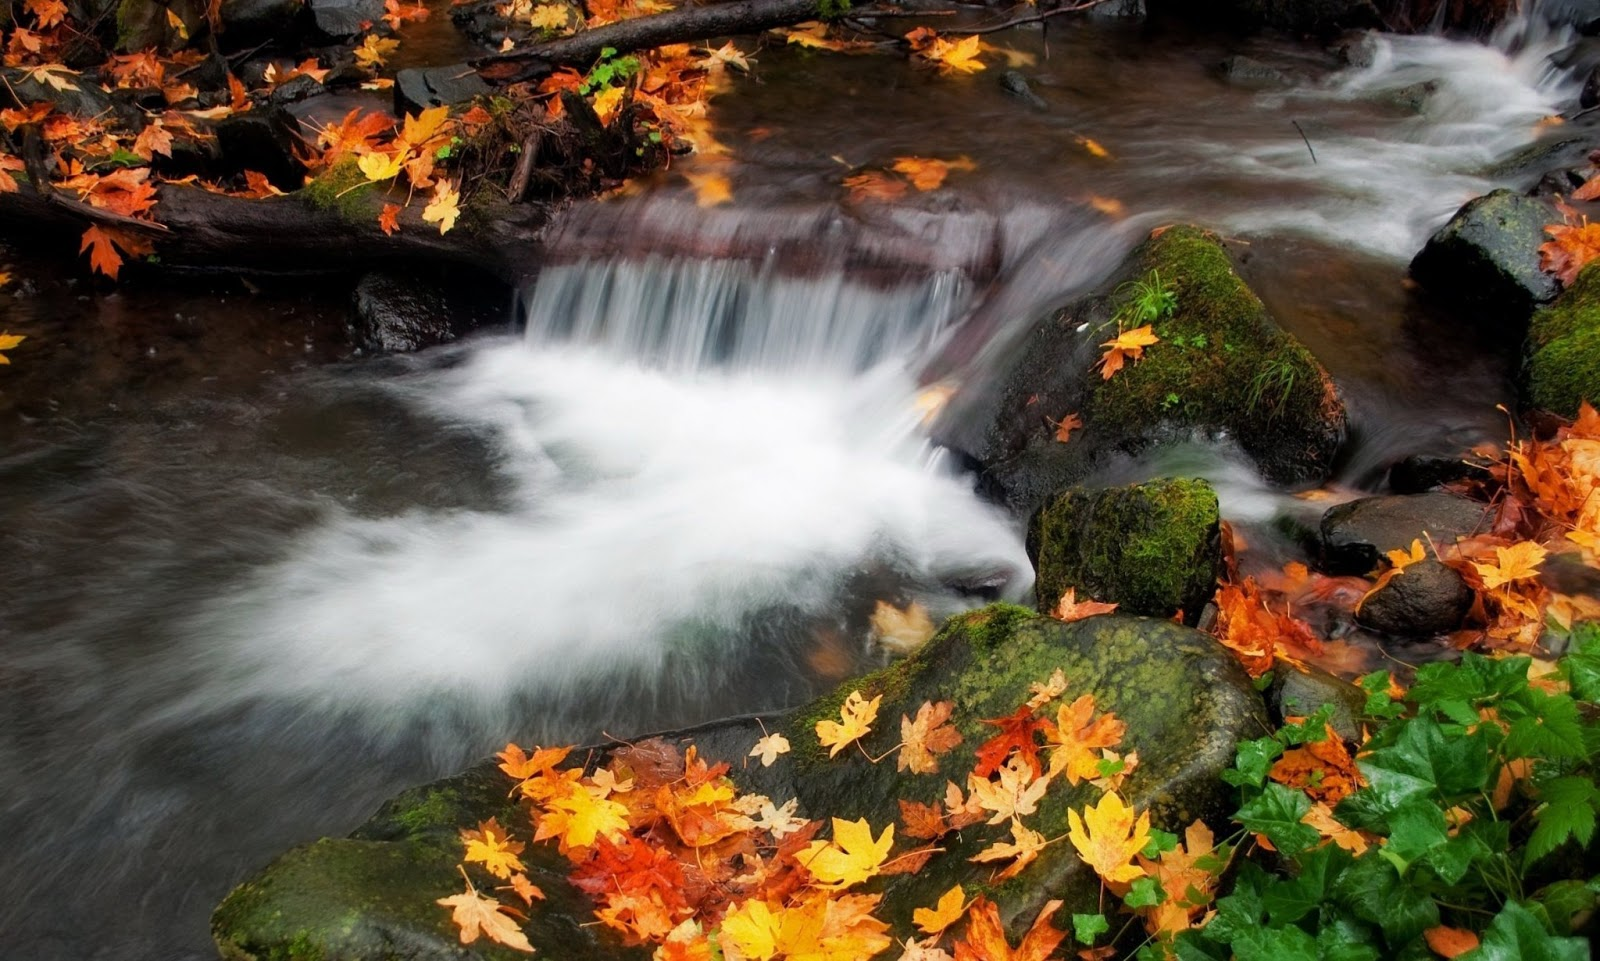 AMAZING NATURE HD WALLPAPERS 1080p ~ Hd Wallpapery